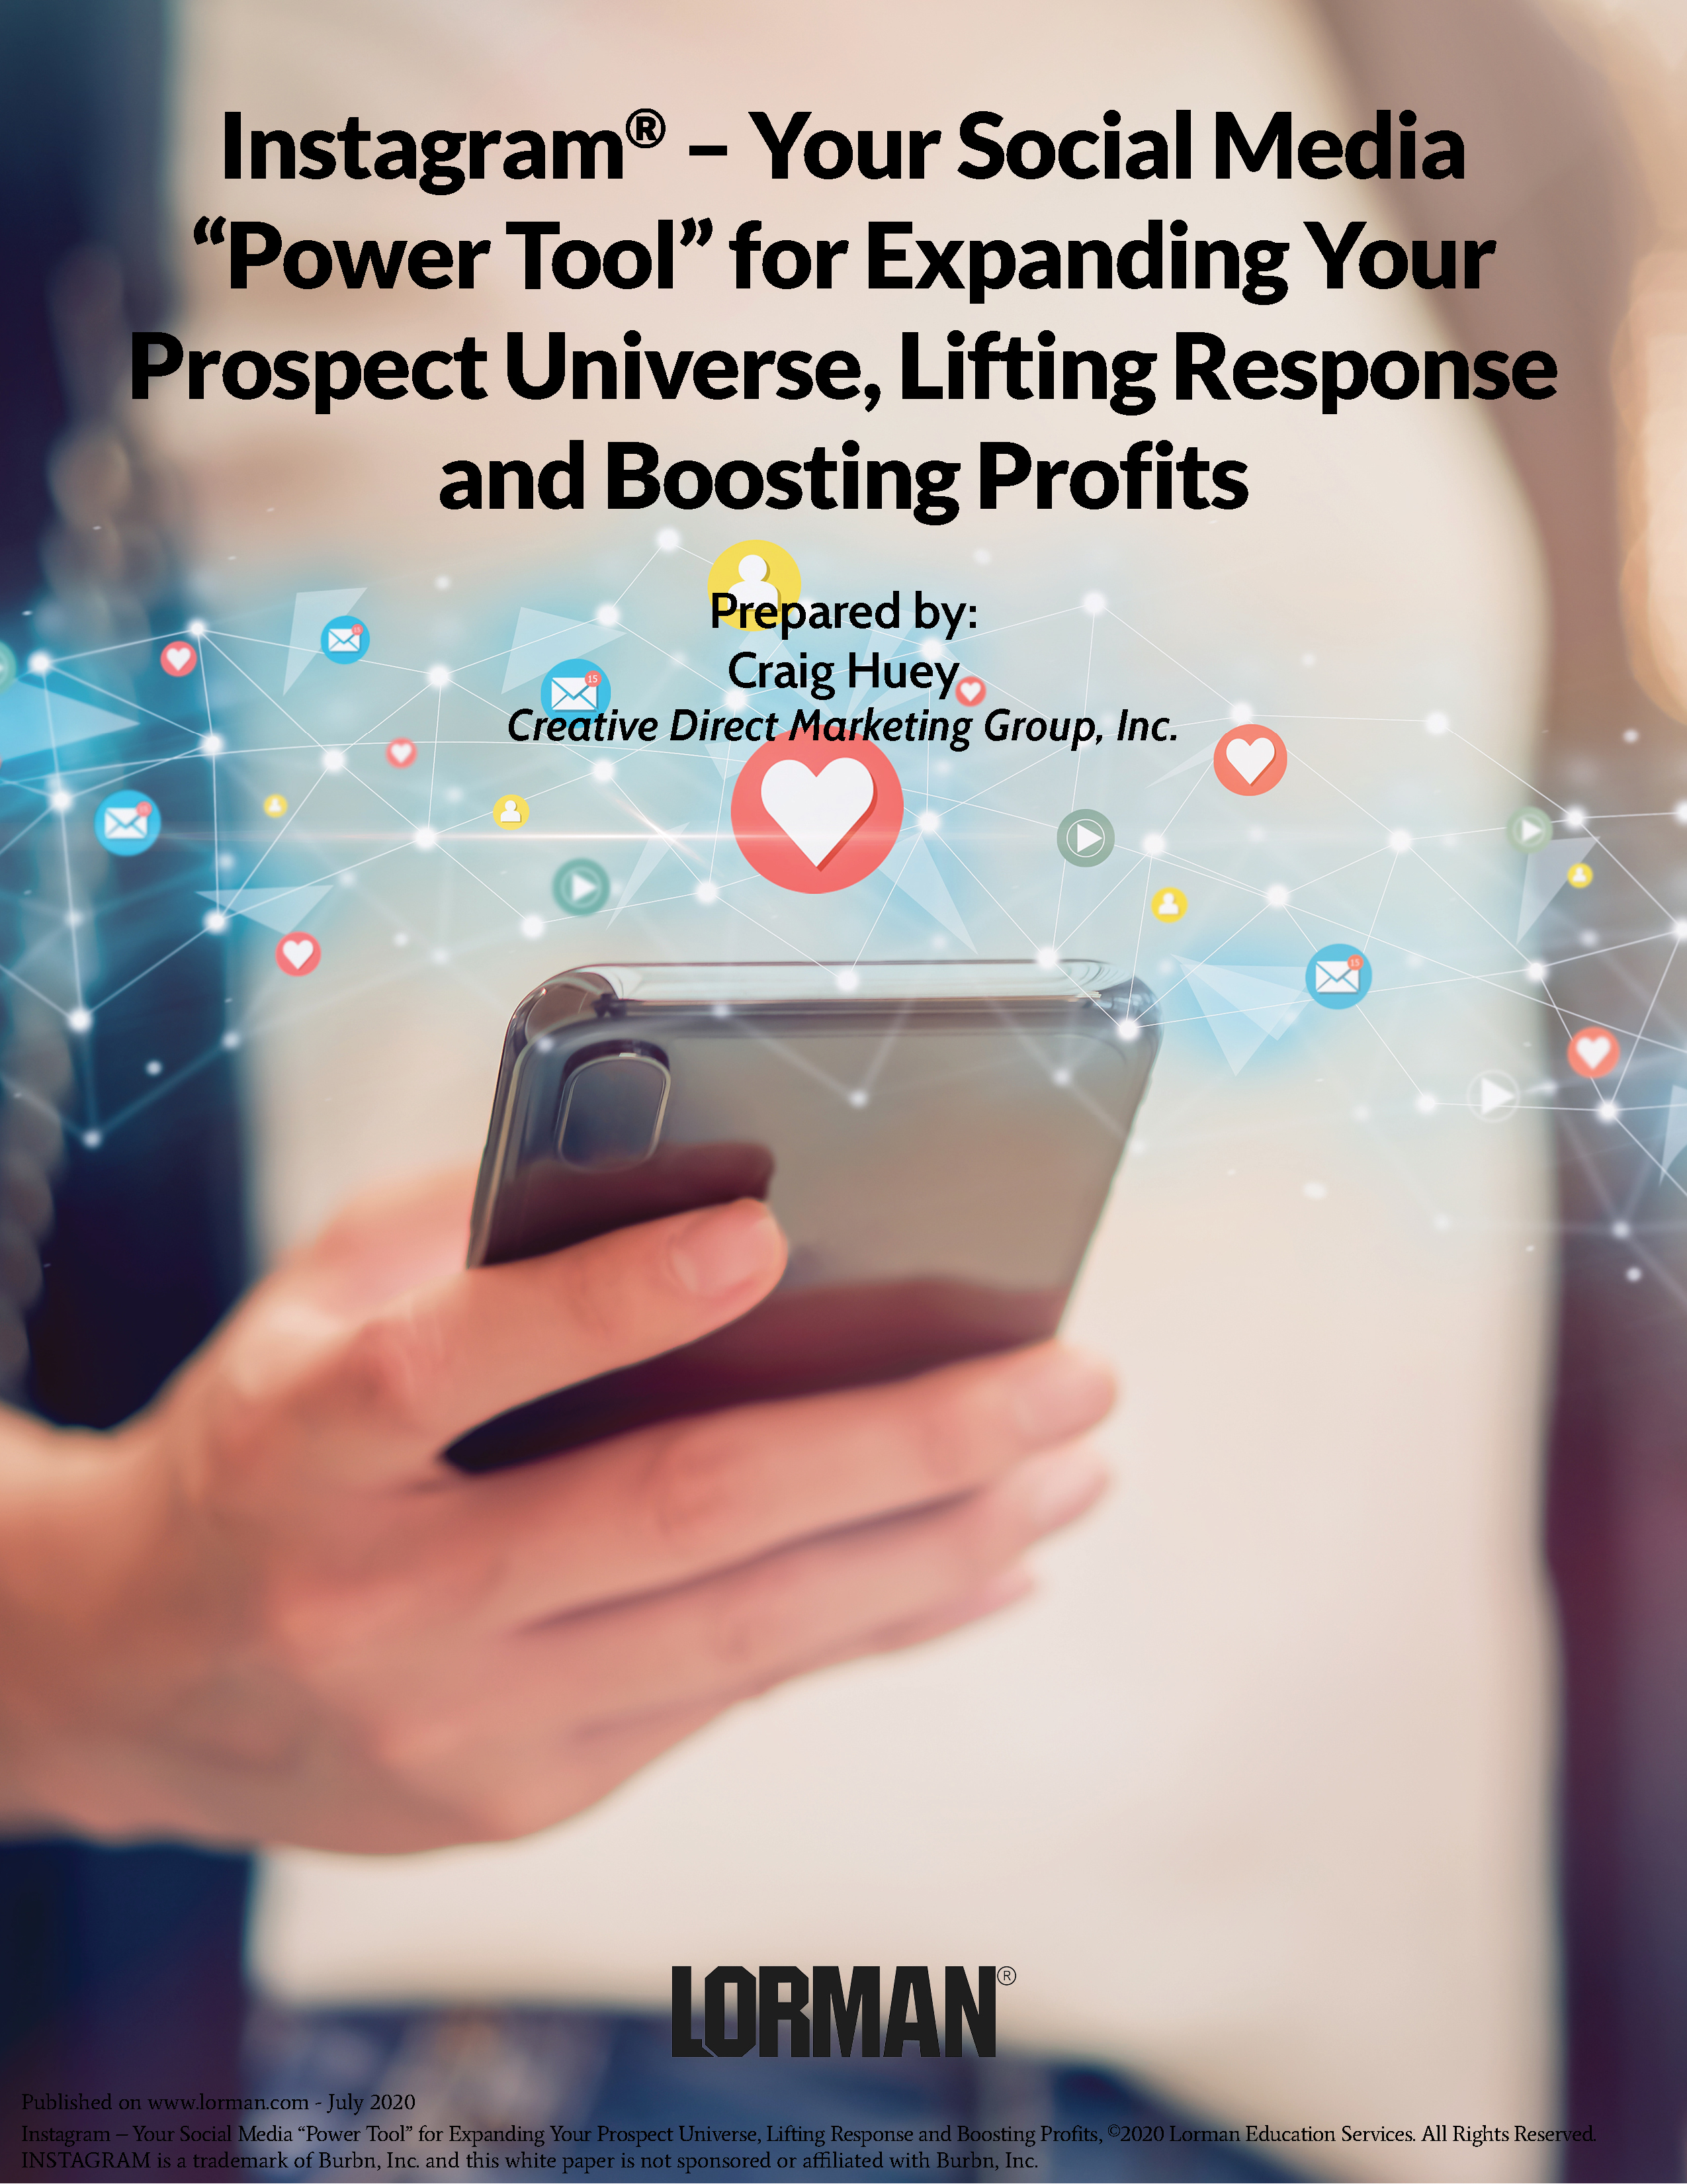 Instagram - Your Social Media Power Tool for Expanding Your Prospect Universe